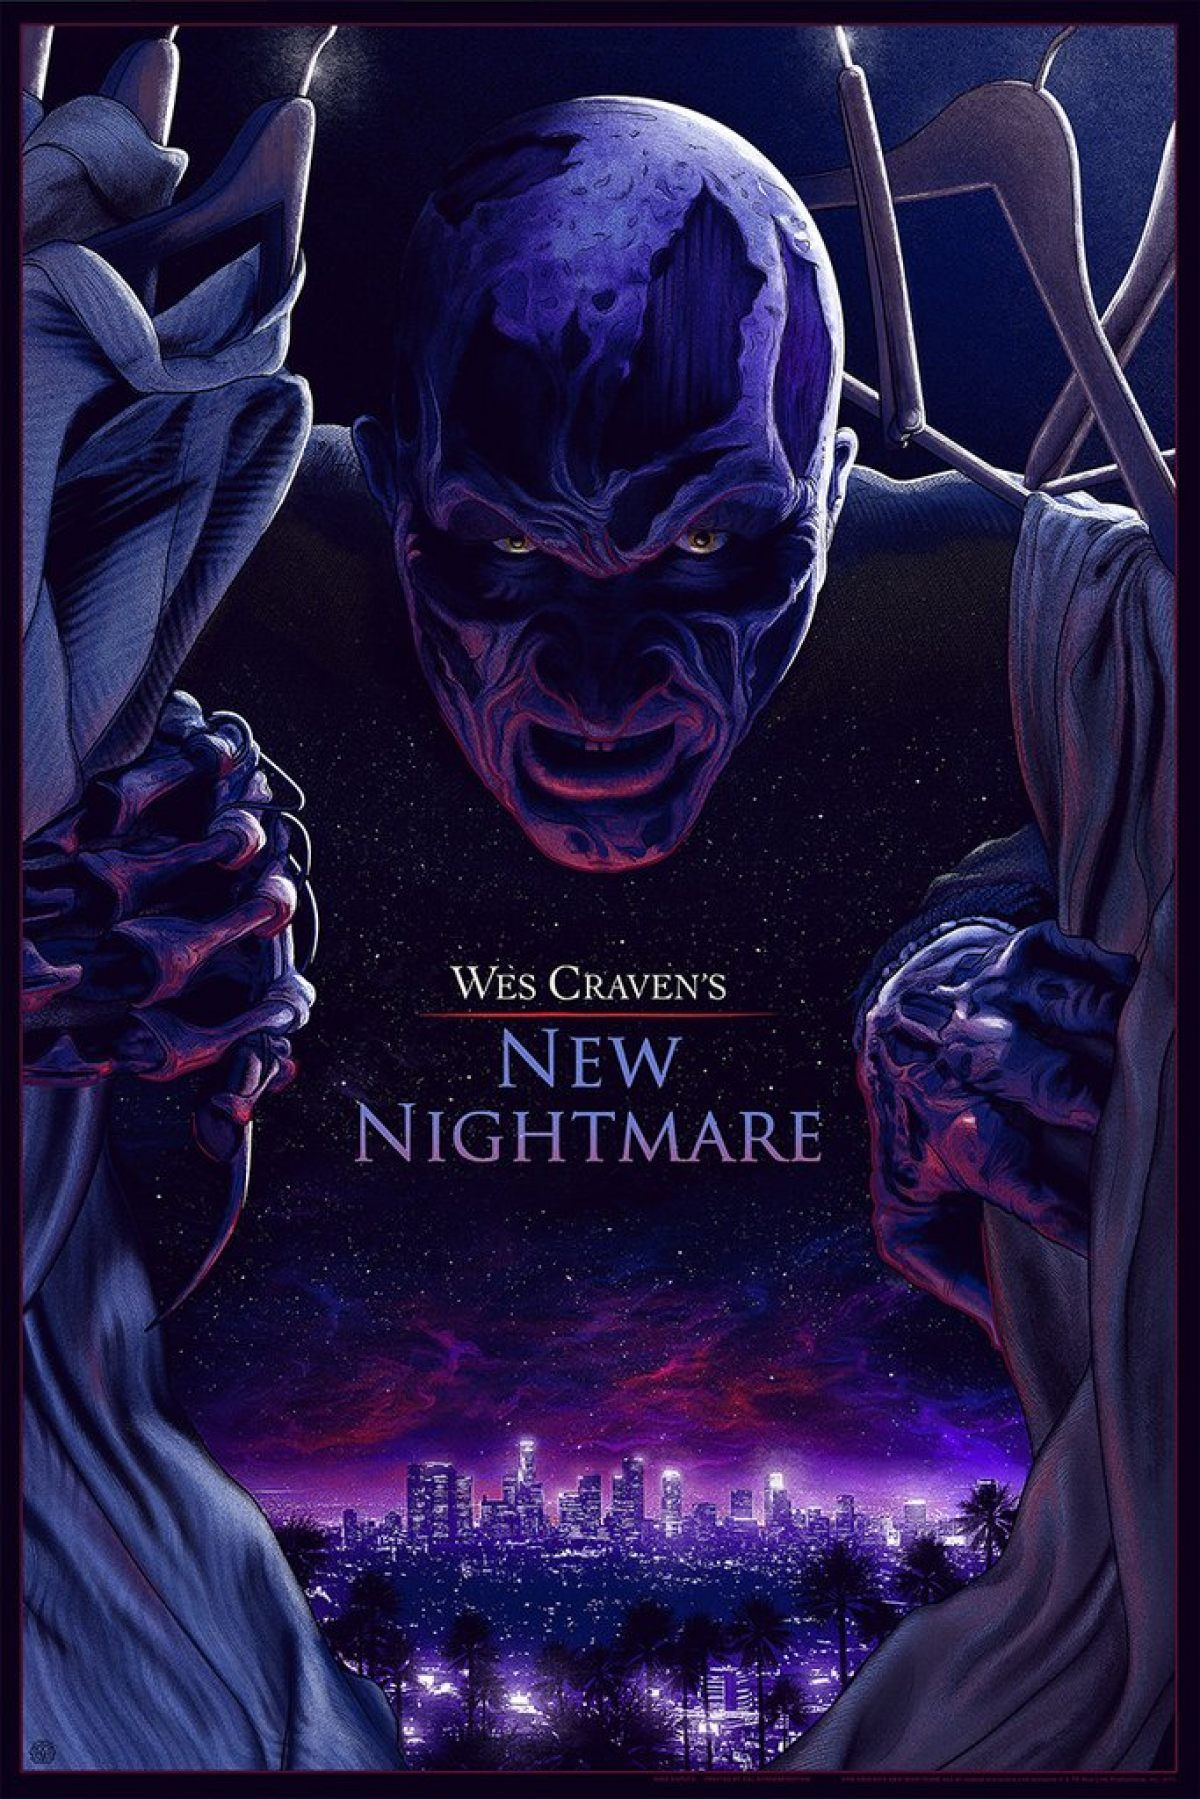 Wes Craven's New Nightmare alternate poster